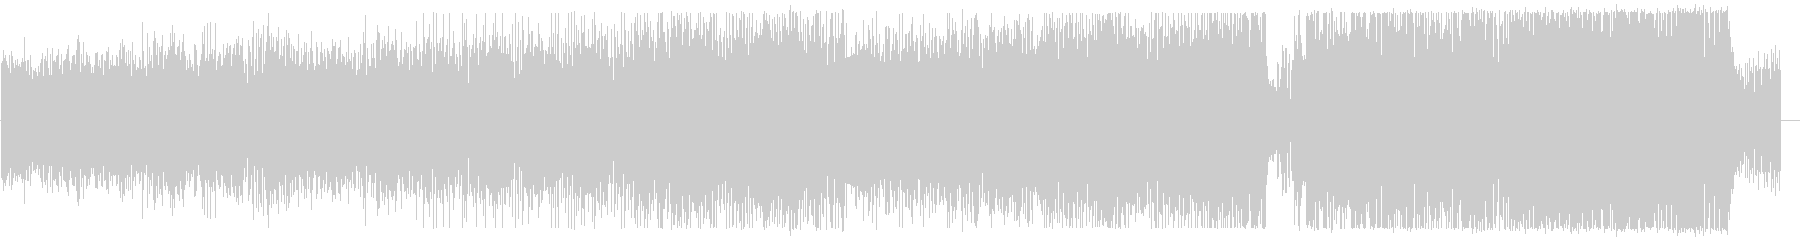 Mad Scientist / Pipe Labyrinth's unreproduced waveform